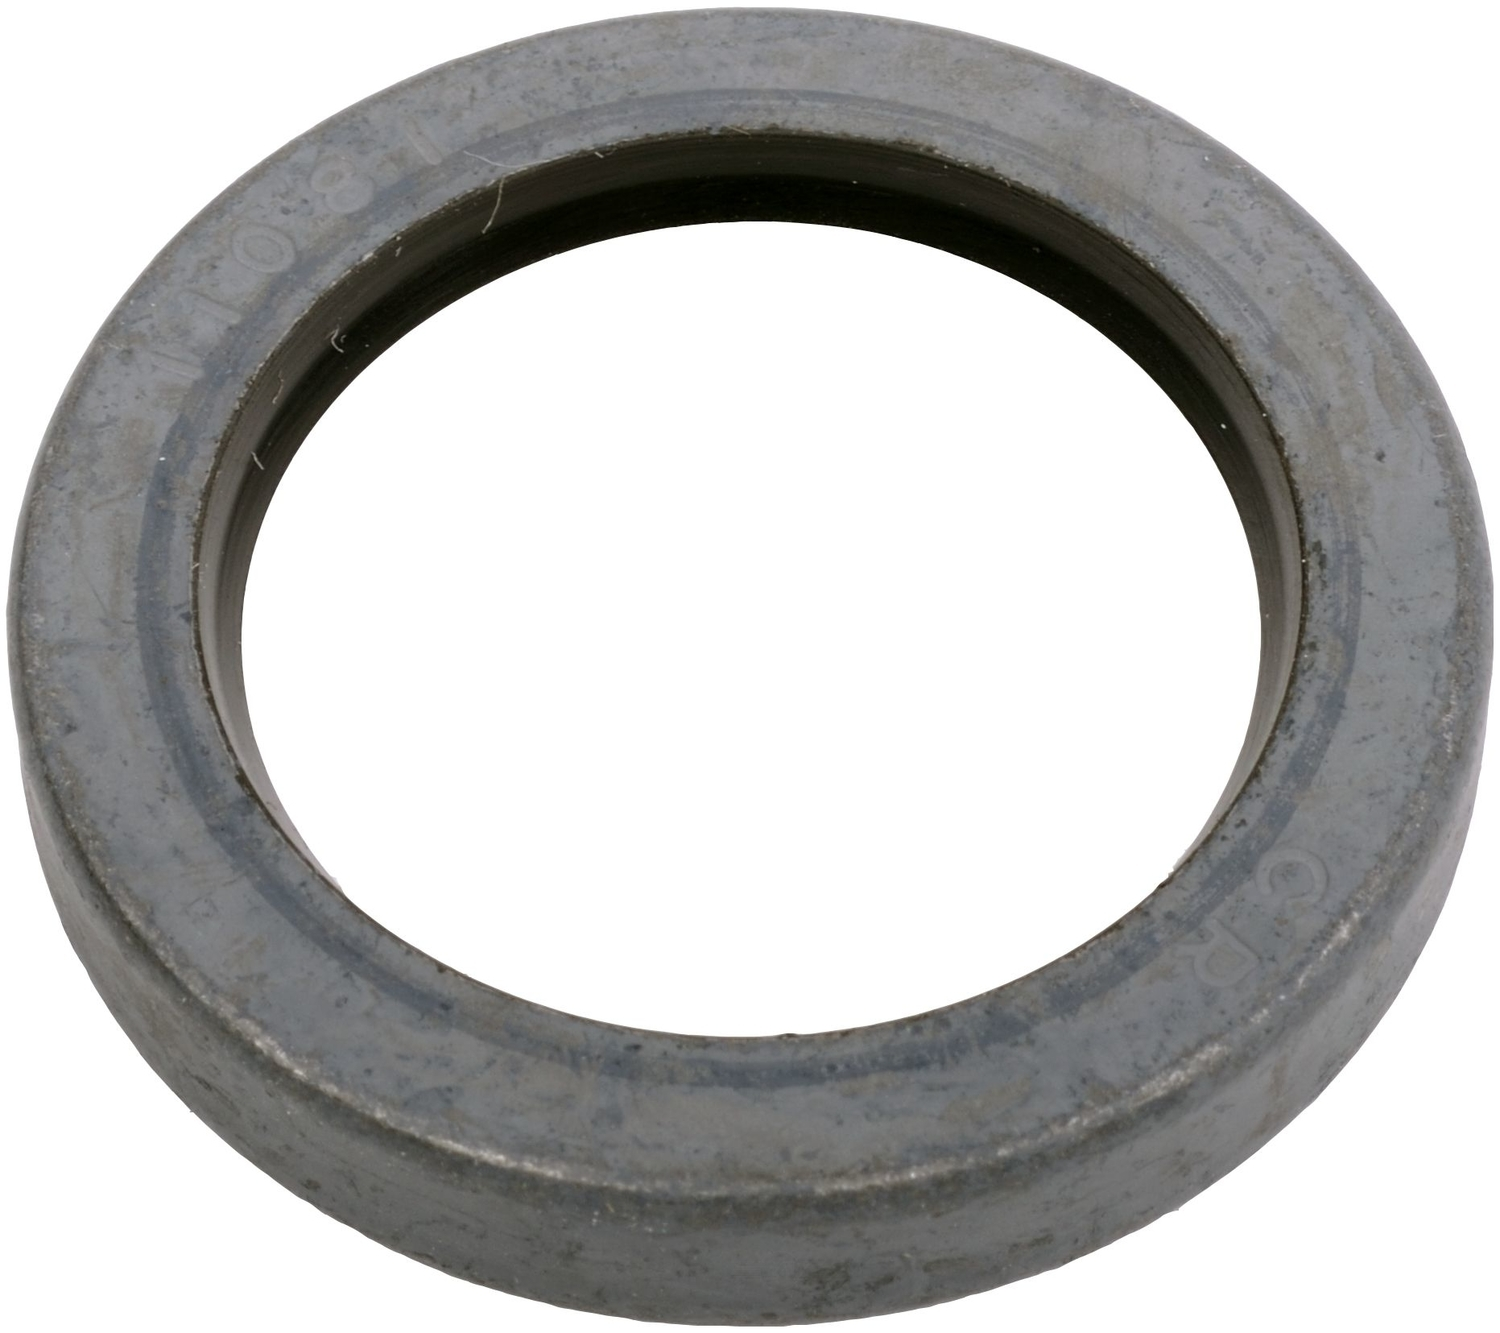 SKF (CHICAGO RAWHIDE) - Steering Gear Housing Seal - SKF 11081